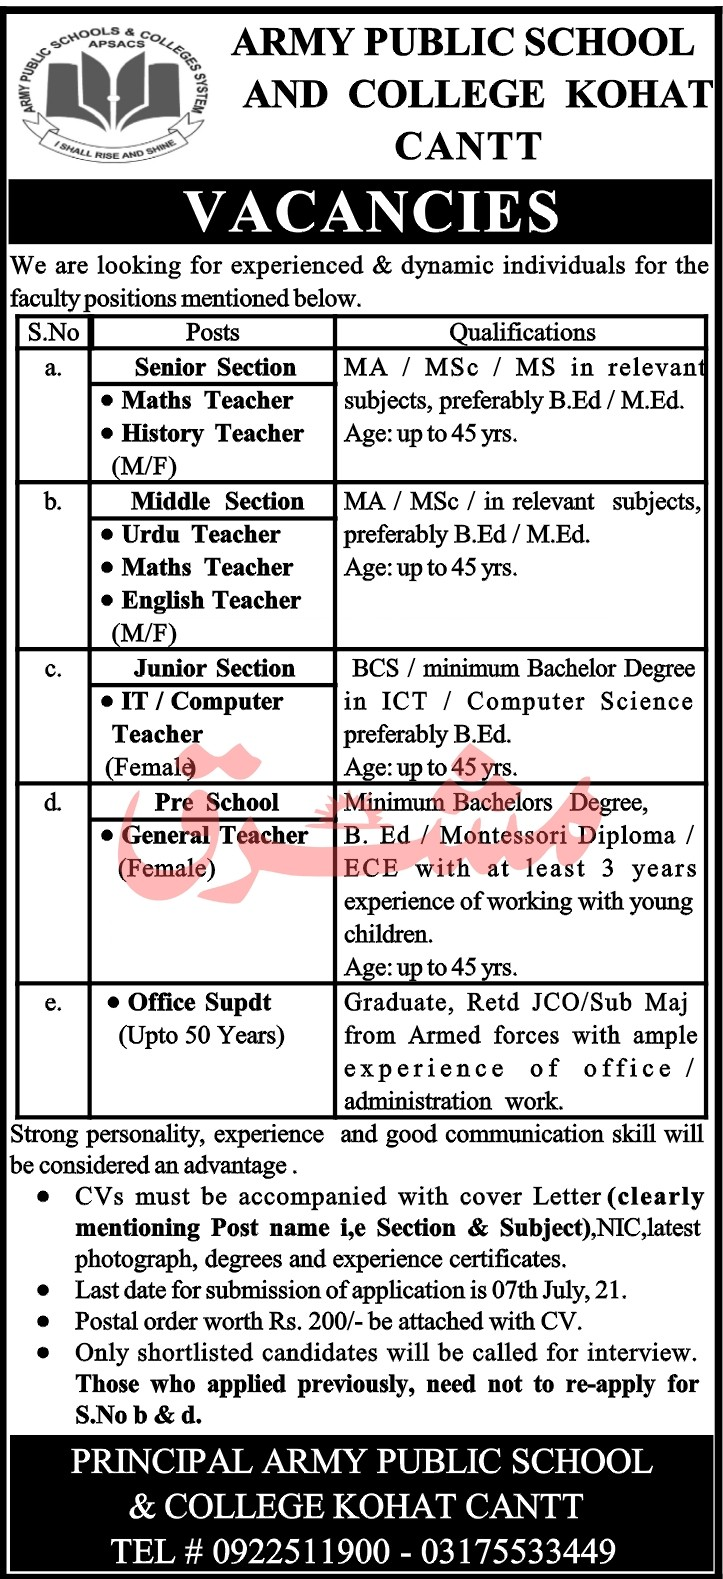 Jobs in Army Public School and College Kohat Cantt